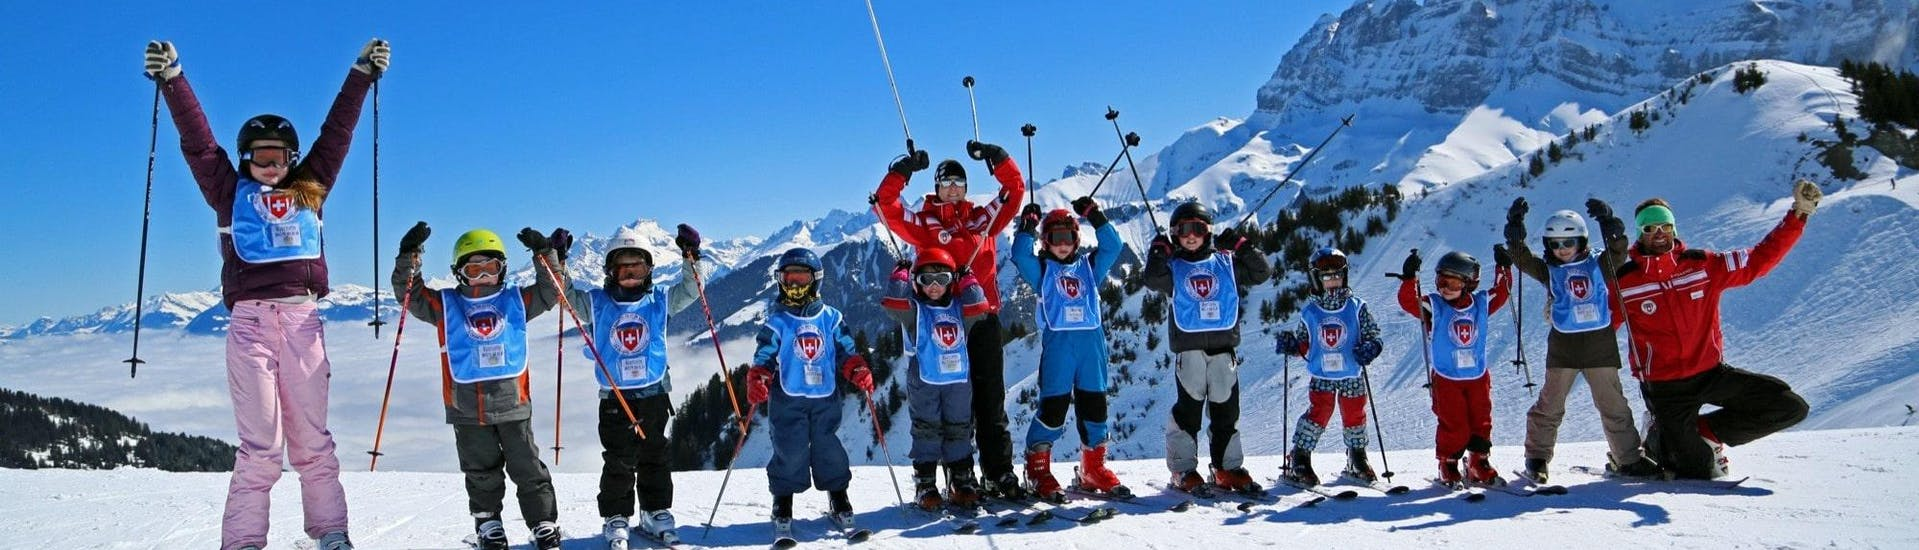 Kids are standing next to one another with their ski poles in the air during their Kids Ski Lessons (from 4 years) - All Levels with the Swiss Ski School Les Crosets-Champoussin.